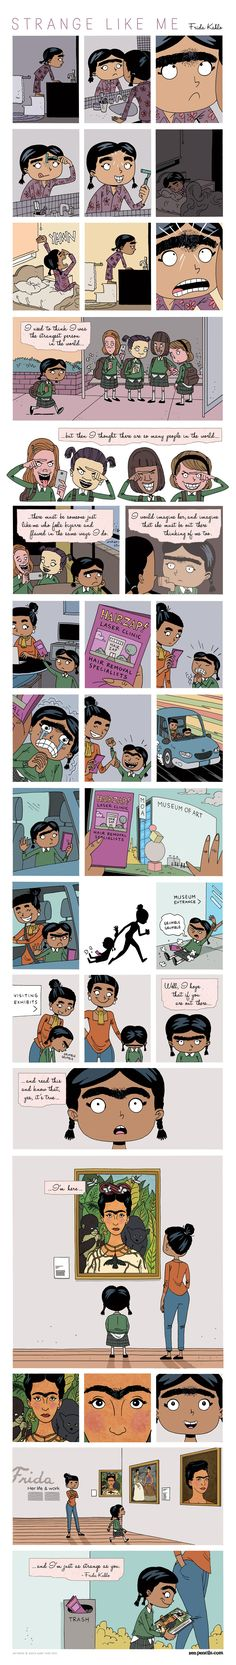 ZEN PENCILS » 177. FRIDA KAHLO: Strange like me